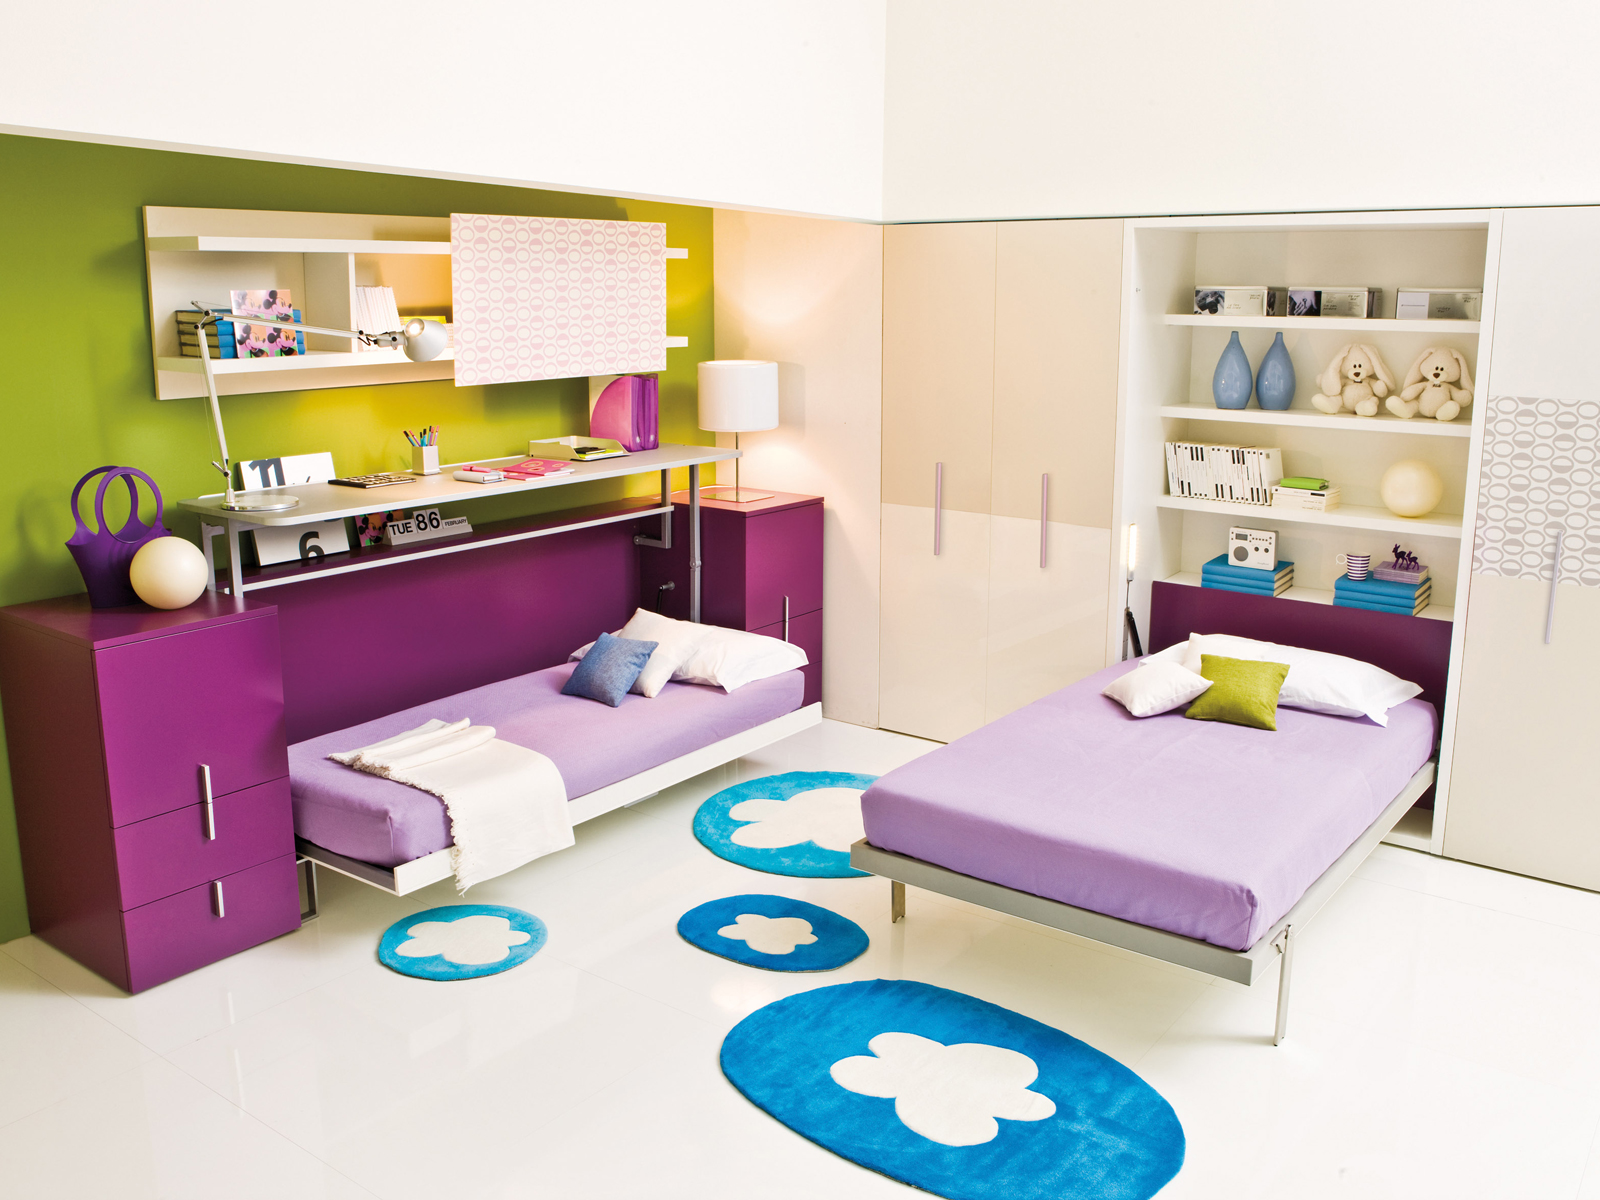 1572864204 230 cool furniture and design ideas for teenage rooms - Cool Furniture And Design Ideas For Teenage Rooms